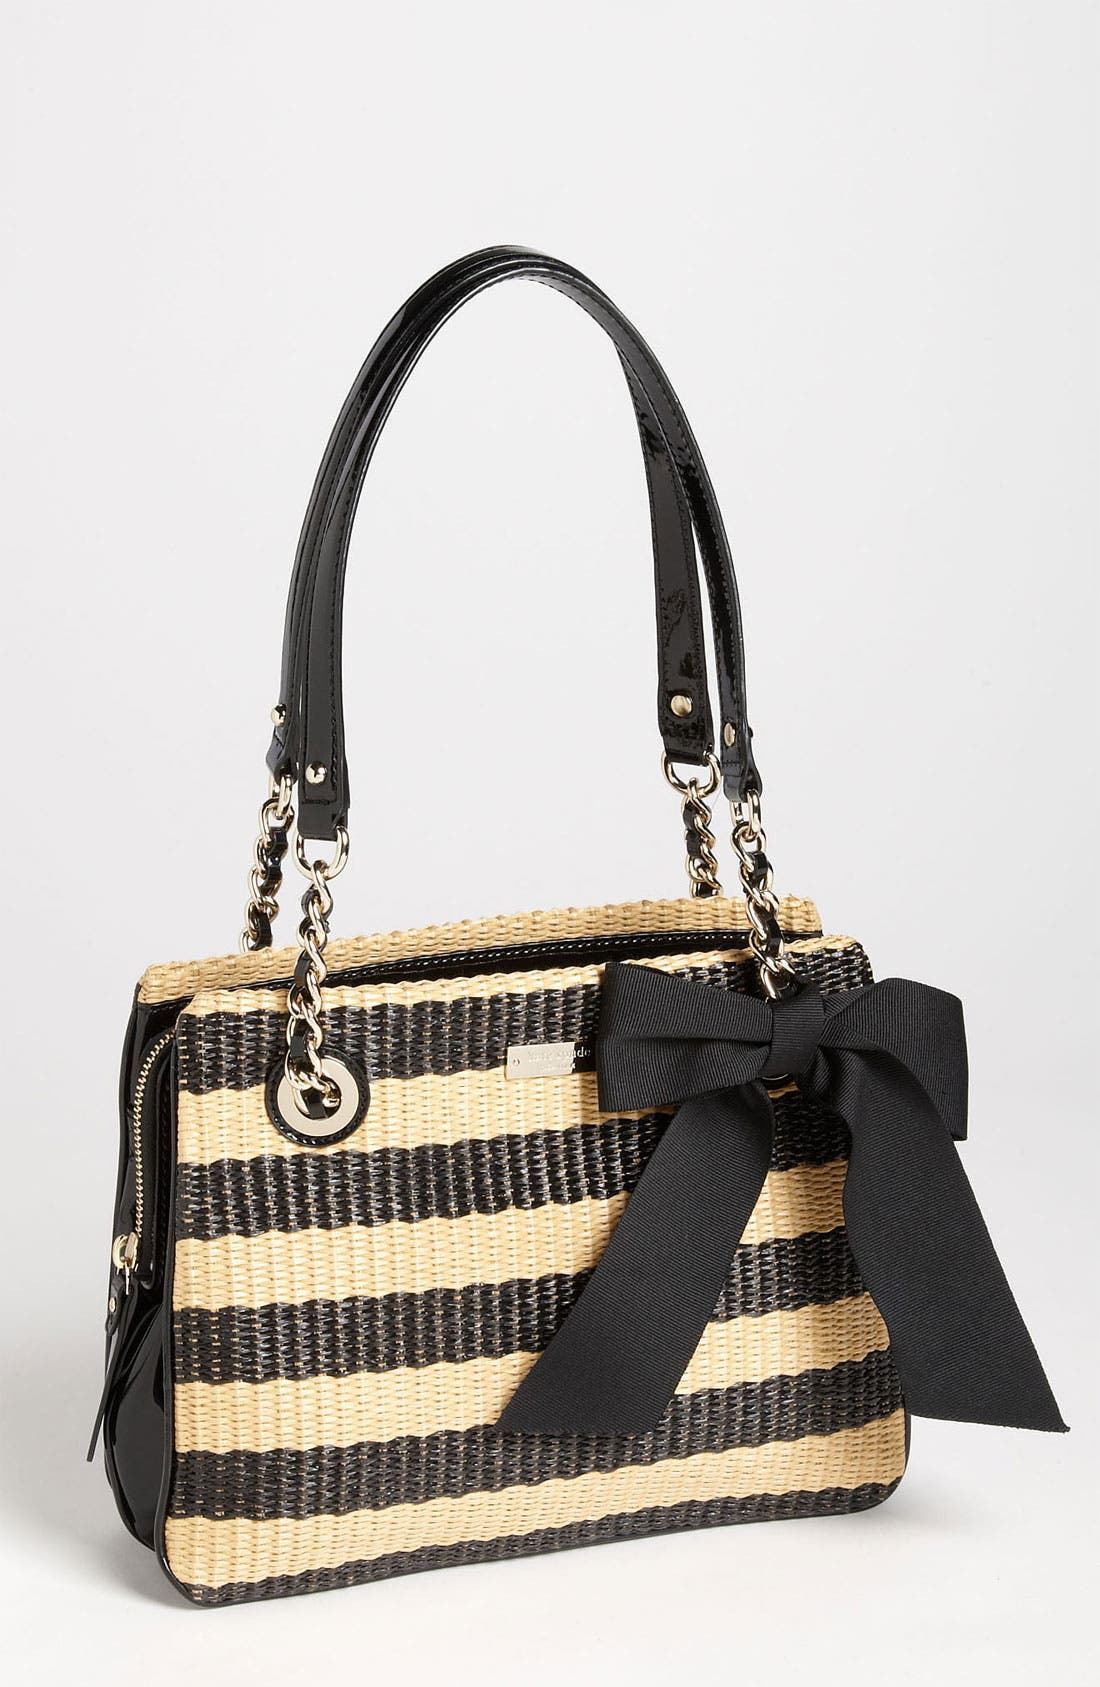 Alternate Image 1 Selected - kate spade new york 'pacific heights - zippered darcy' shoulder bag (Nordstrom Exclusive)